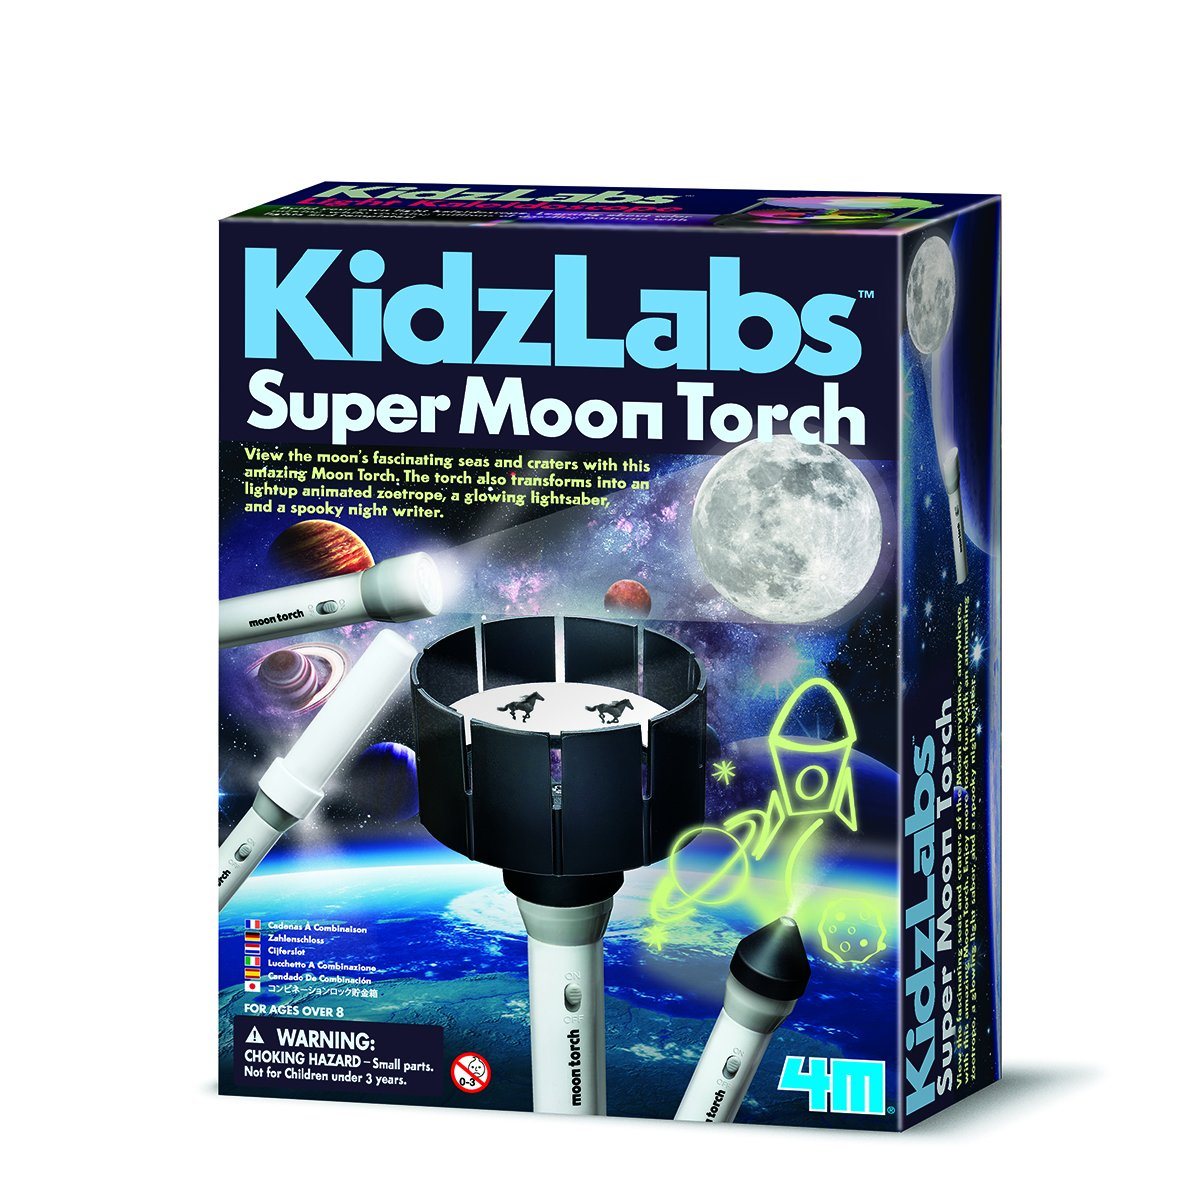 Jardines Online Warehouse Fun little project - No 1 Selling Girls & Boys Present Idea For Christmas Age 5+ Kidzlabs Super Moon Torch